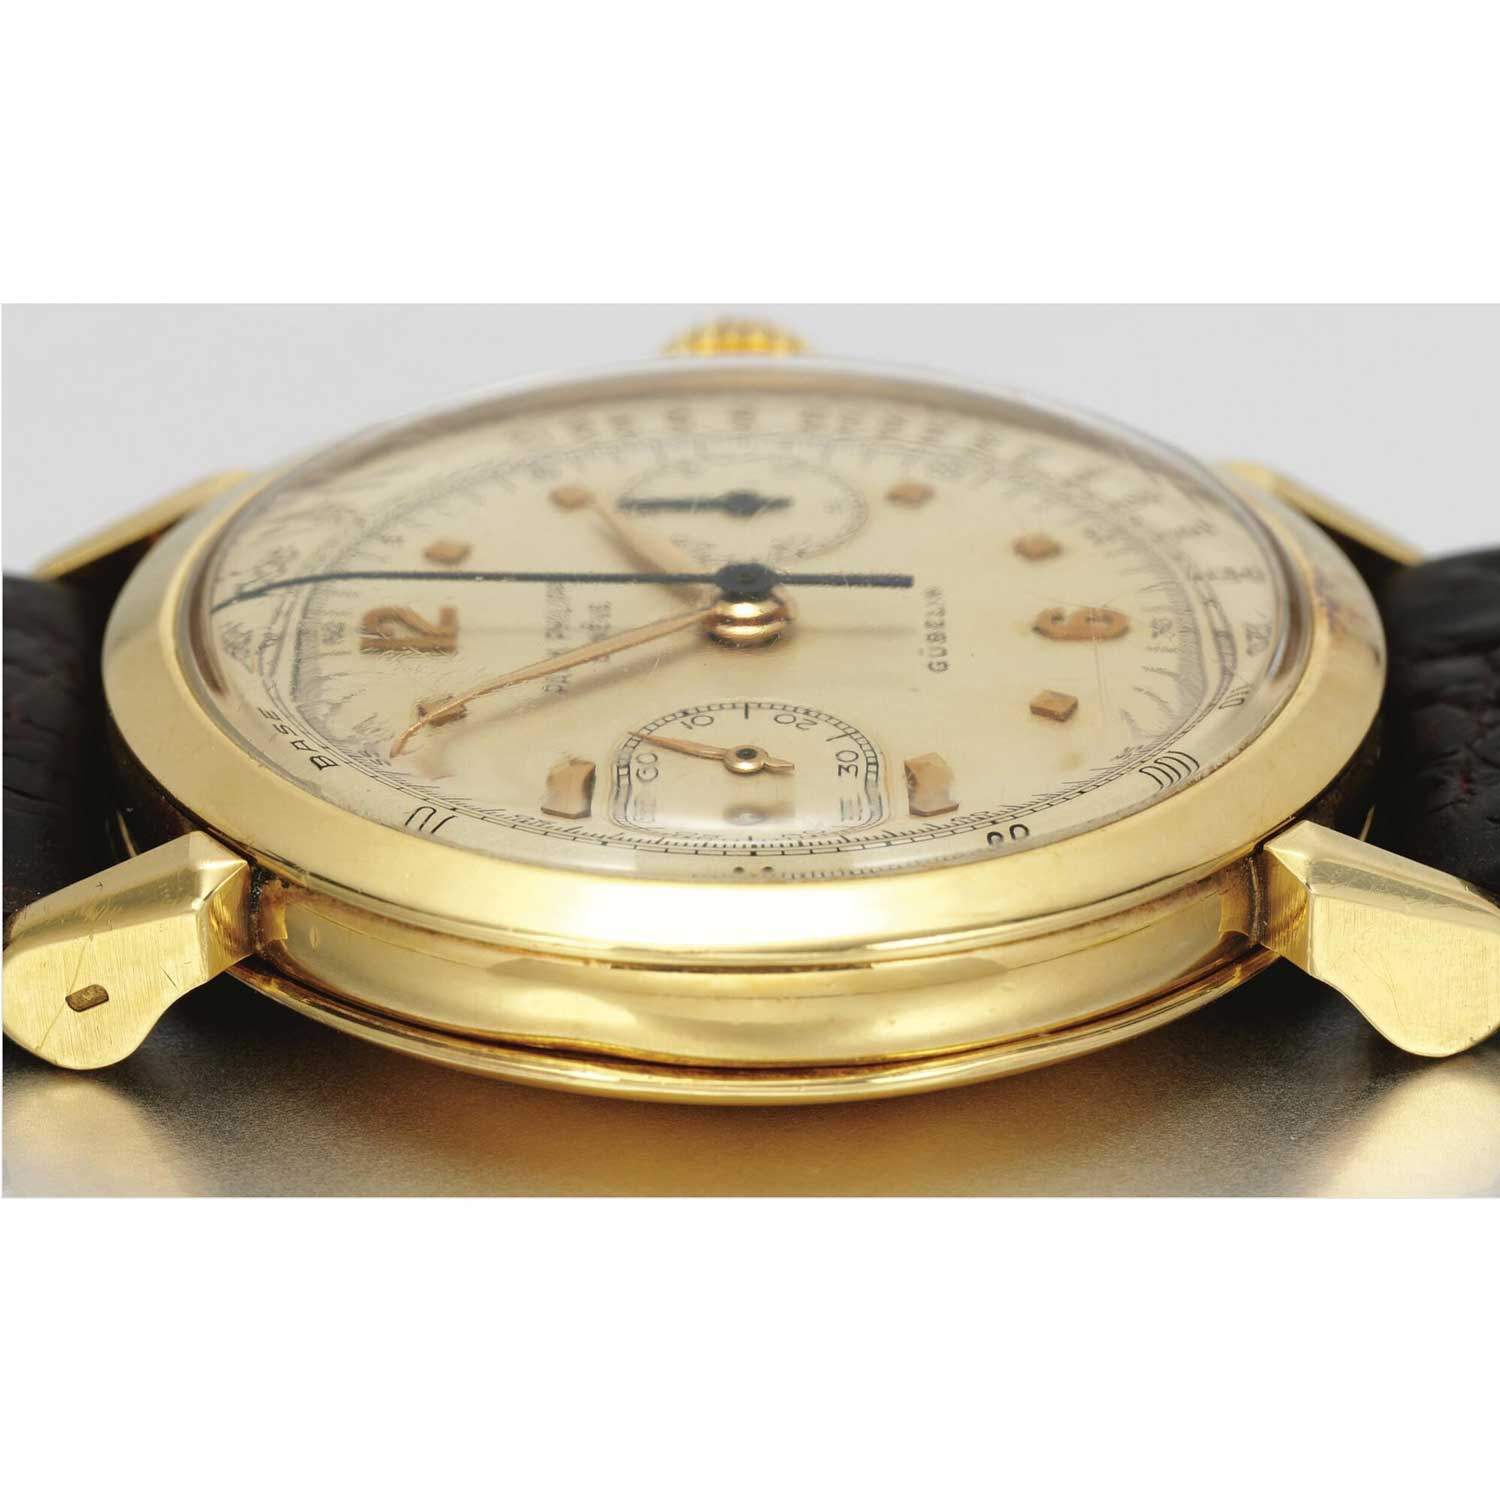 Case side of the 1953 Patek Philippe ref. 1579 yellow gold chronograph with silvered dial, applied gold faceted square and Arabic numerals, retailed by Gübelin (Image: Sothebys.com)